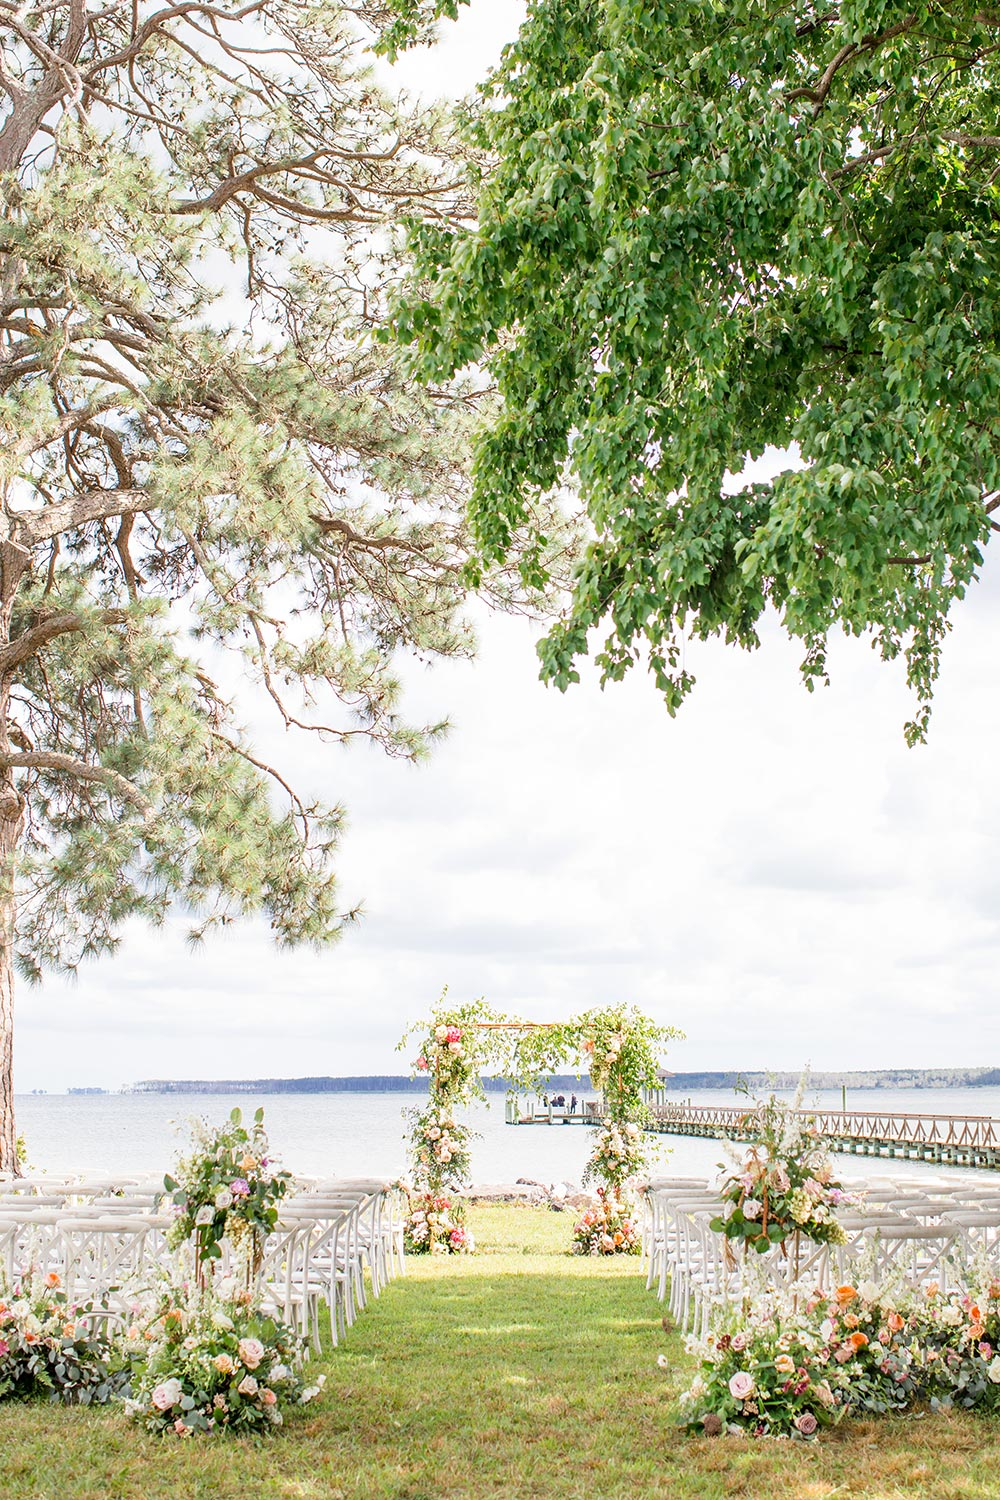 riverside wedding ceremony with garden flowers and white chairs